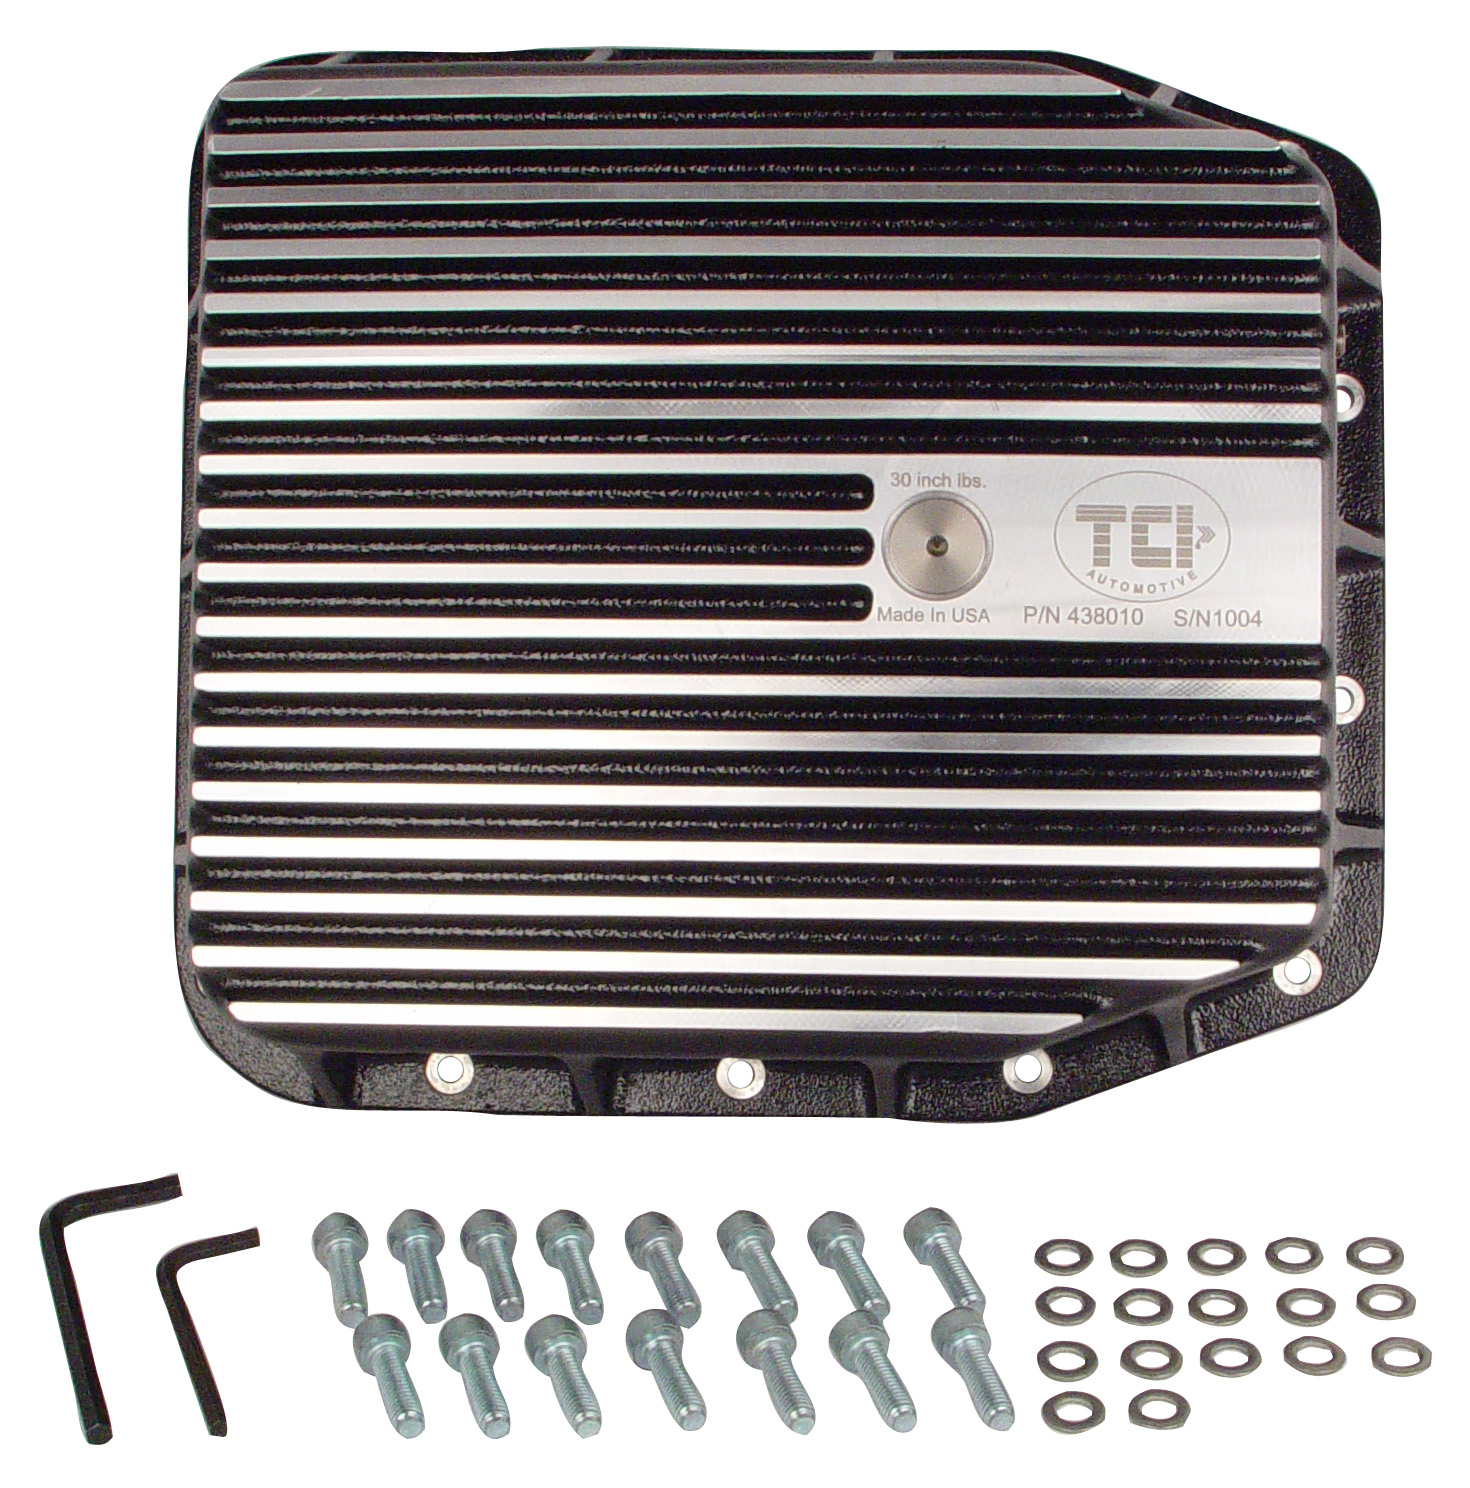 Tci Pans And Accessories Auto Ford C4 Performance Rebuilt Street Strip Transmission With Converter Max Cool Aluminum